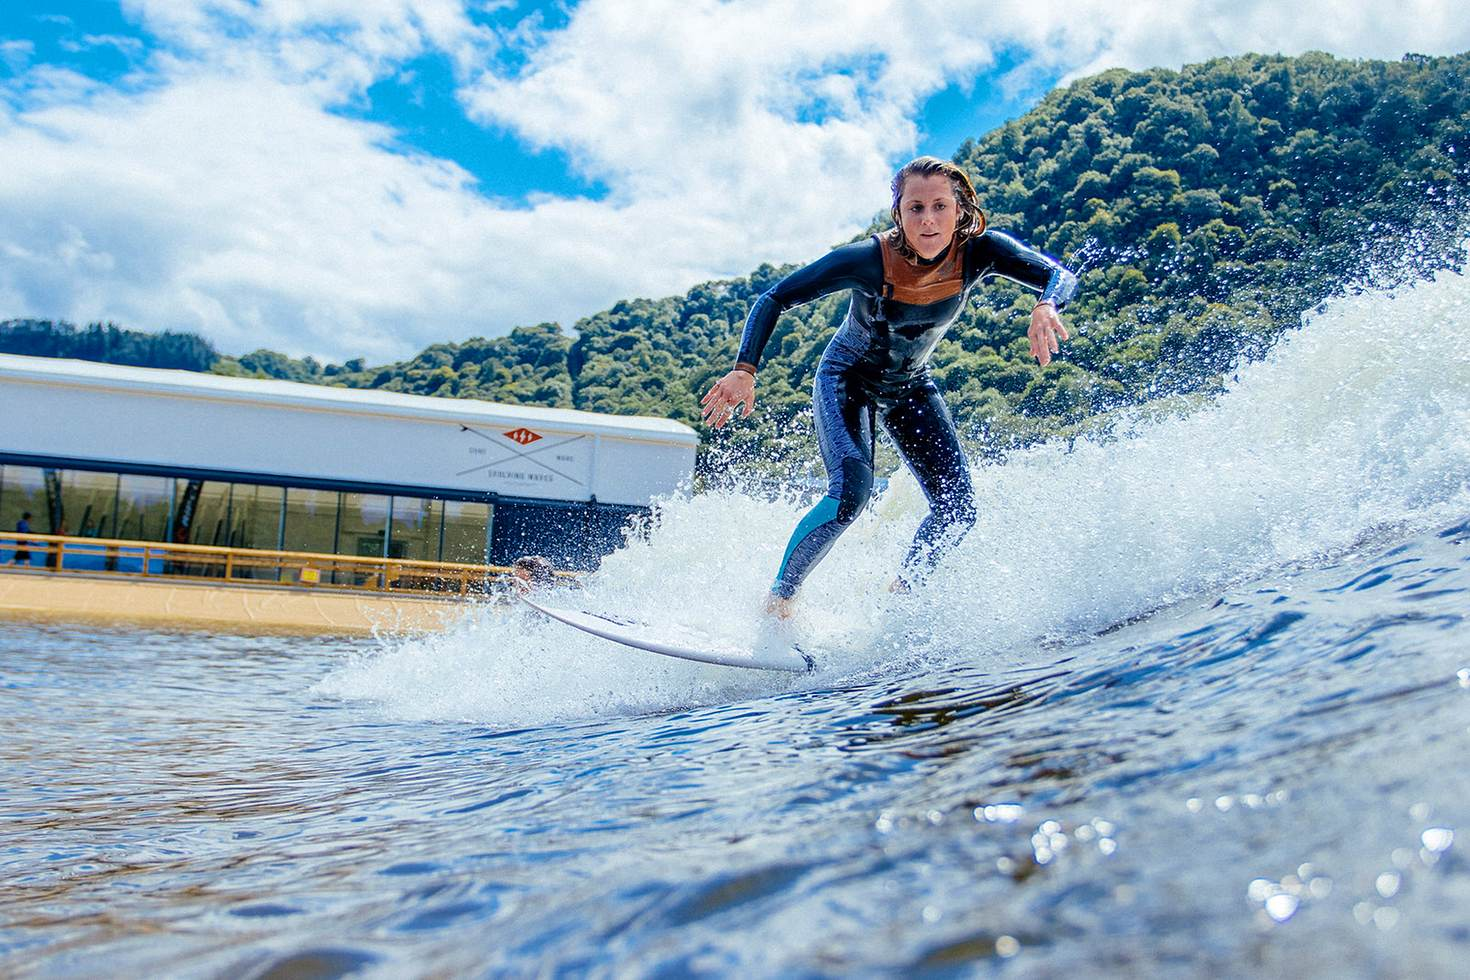 Surf Snowdonia's inland lagoon offers waves amid the hills of North Wales © Surf Snowdonia